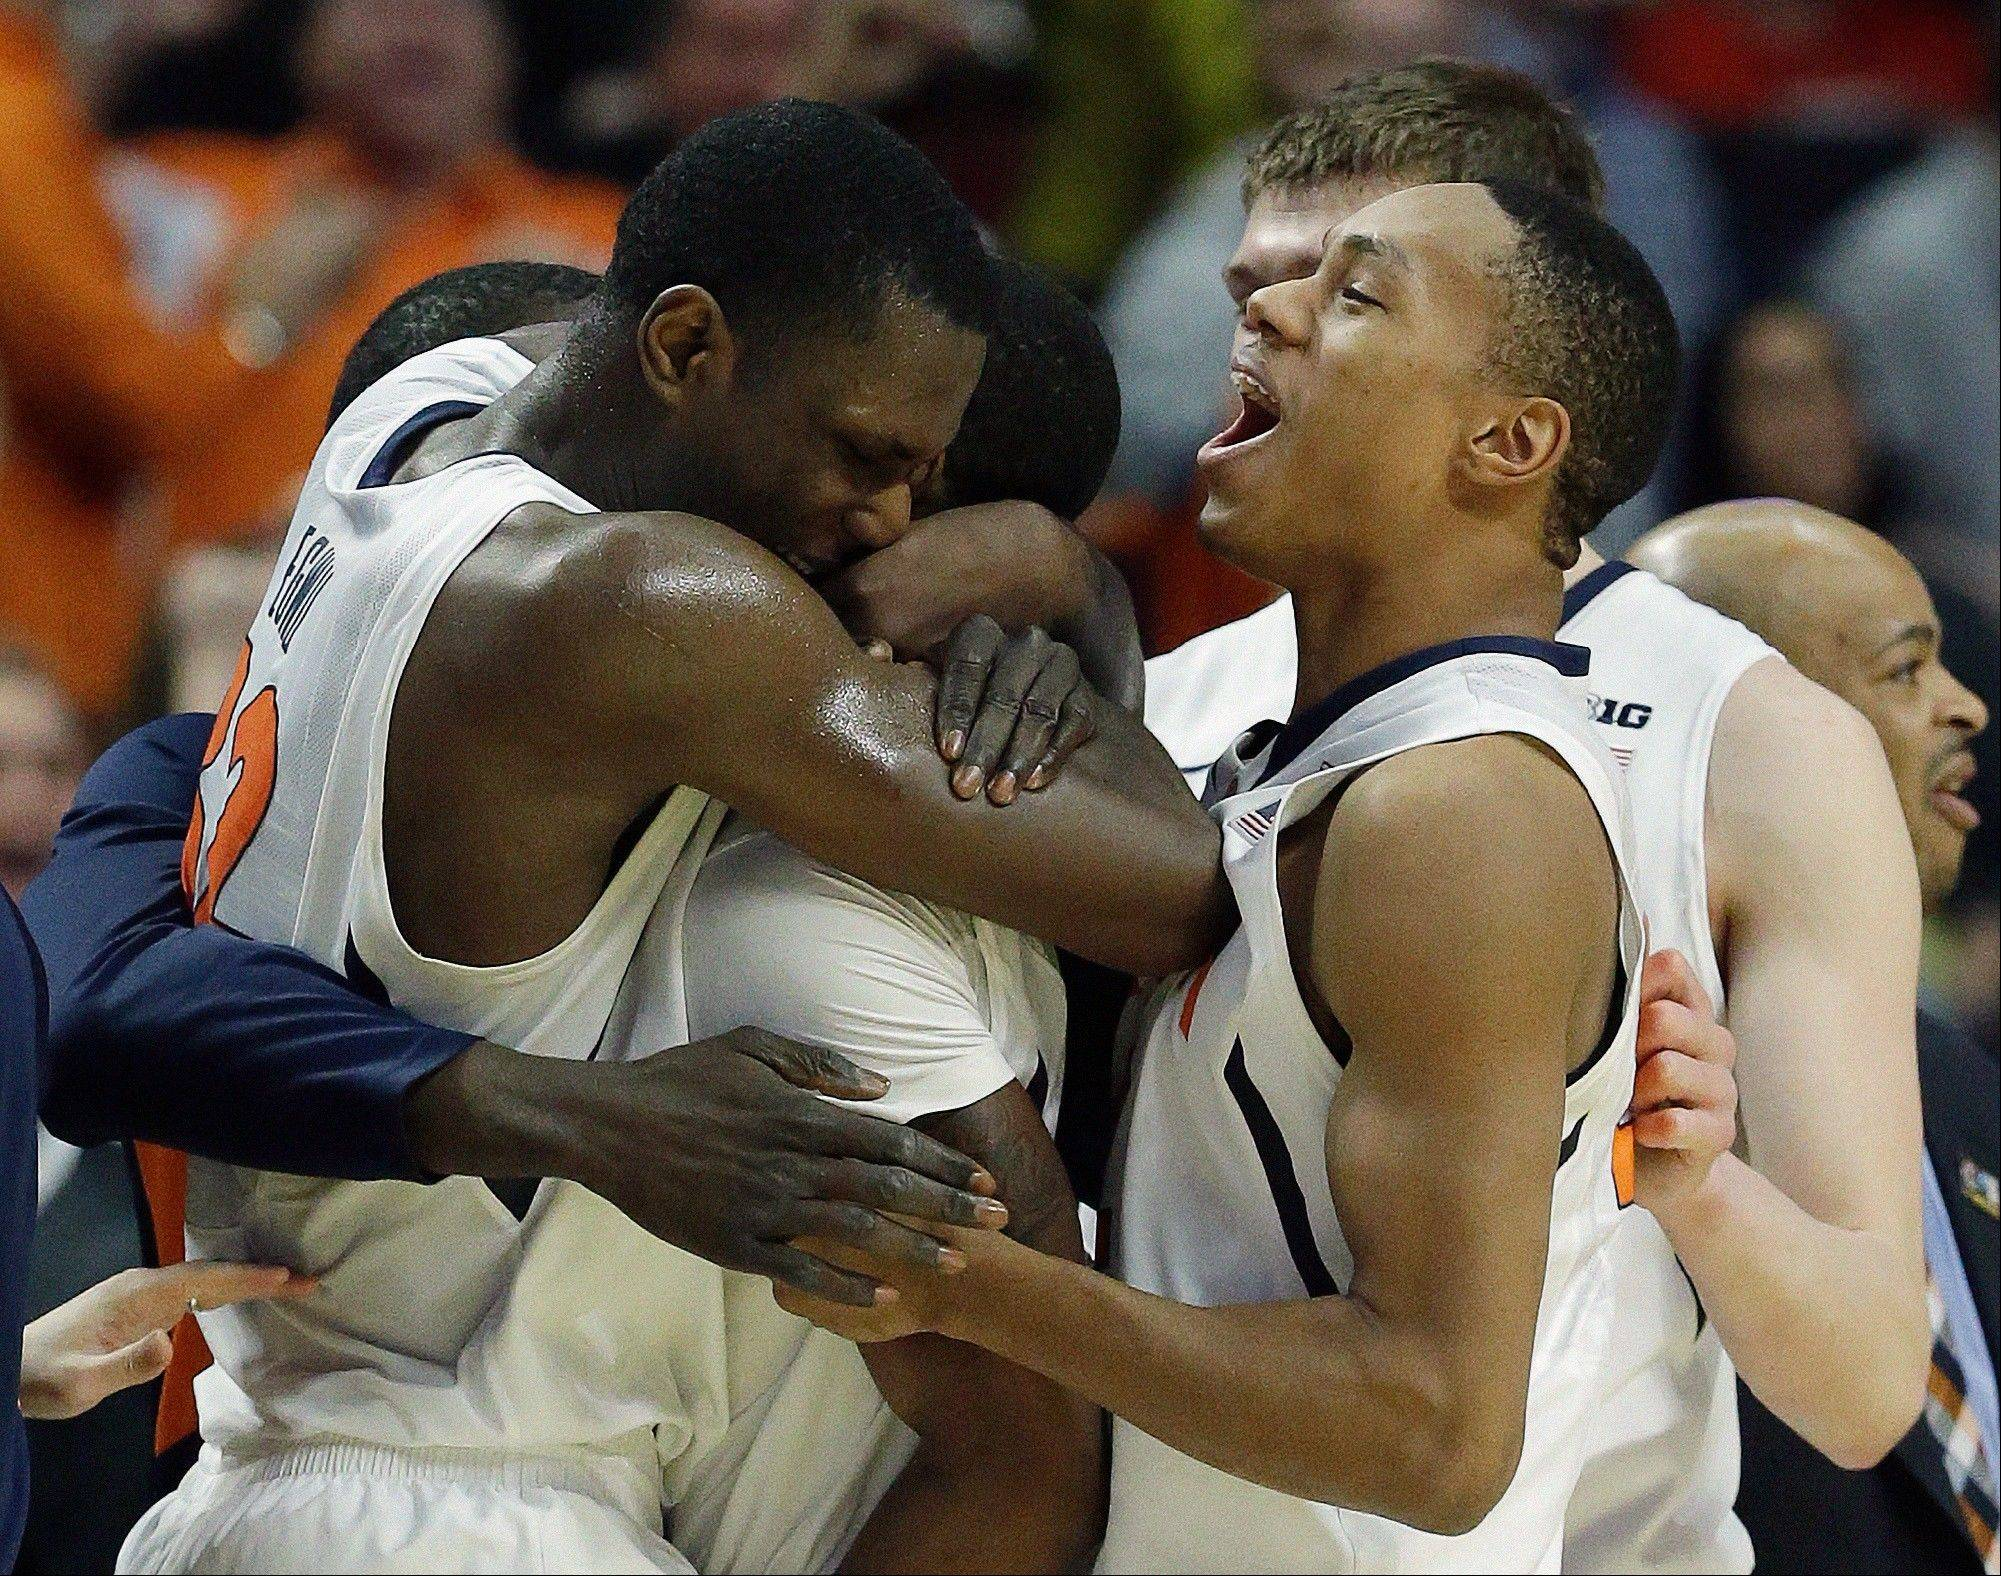 Illinois� Brandon Paul is swarmed by teammates after making the game-winning shot.